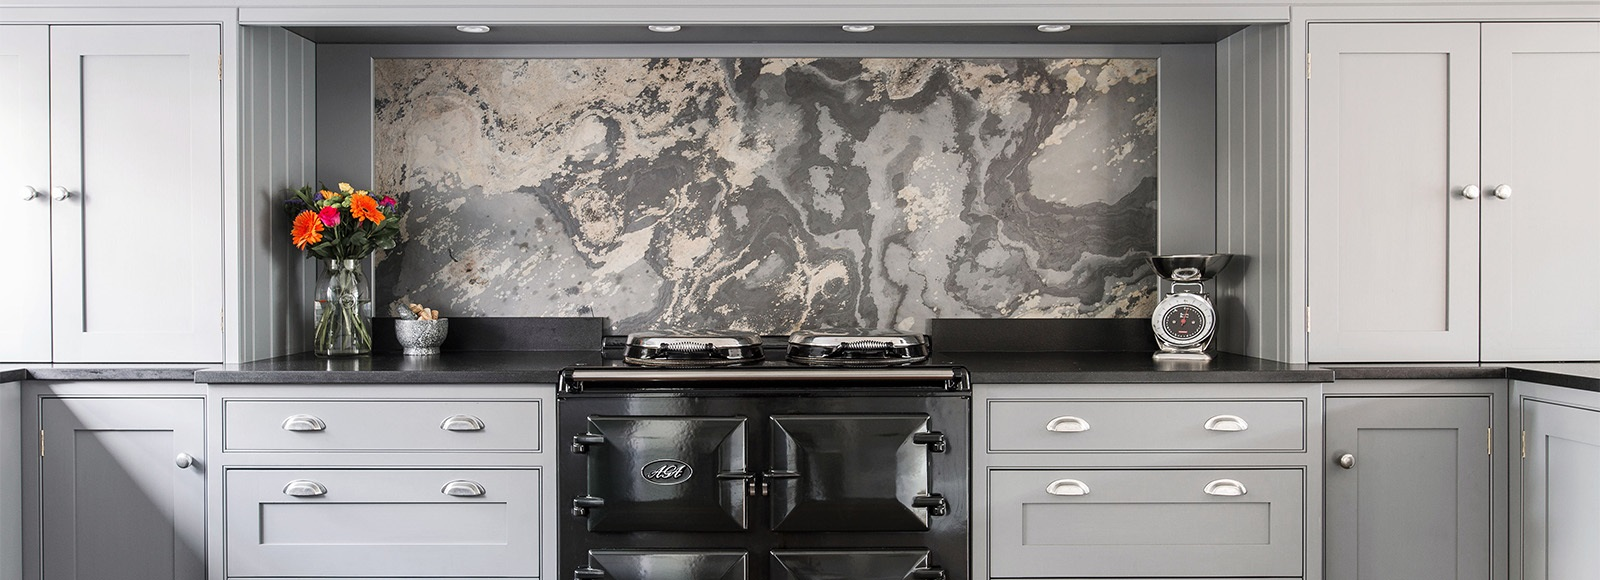 Bespoke Luxury Kitchen - Burlanes bespoke wellsdown kitchen with marble splashback and AGA range.